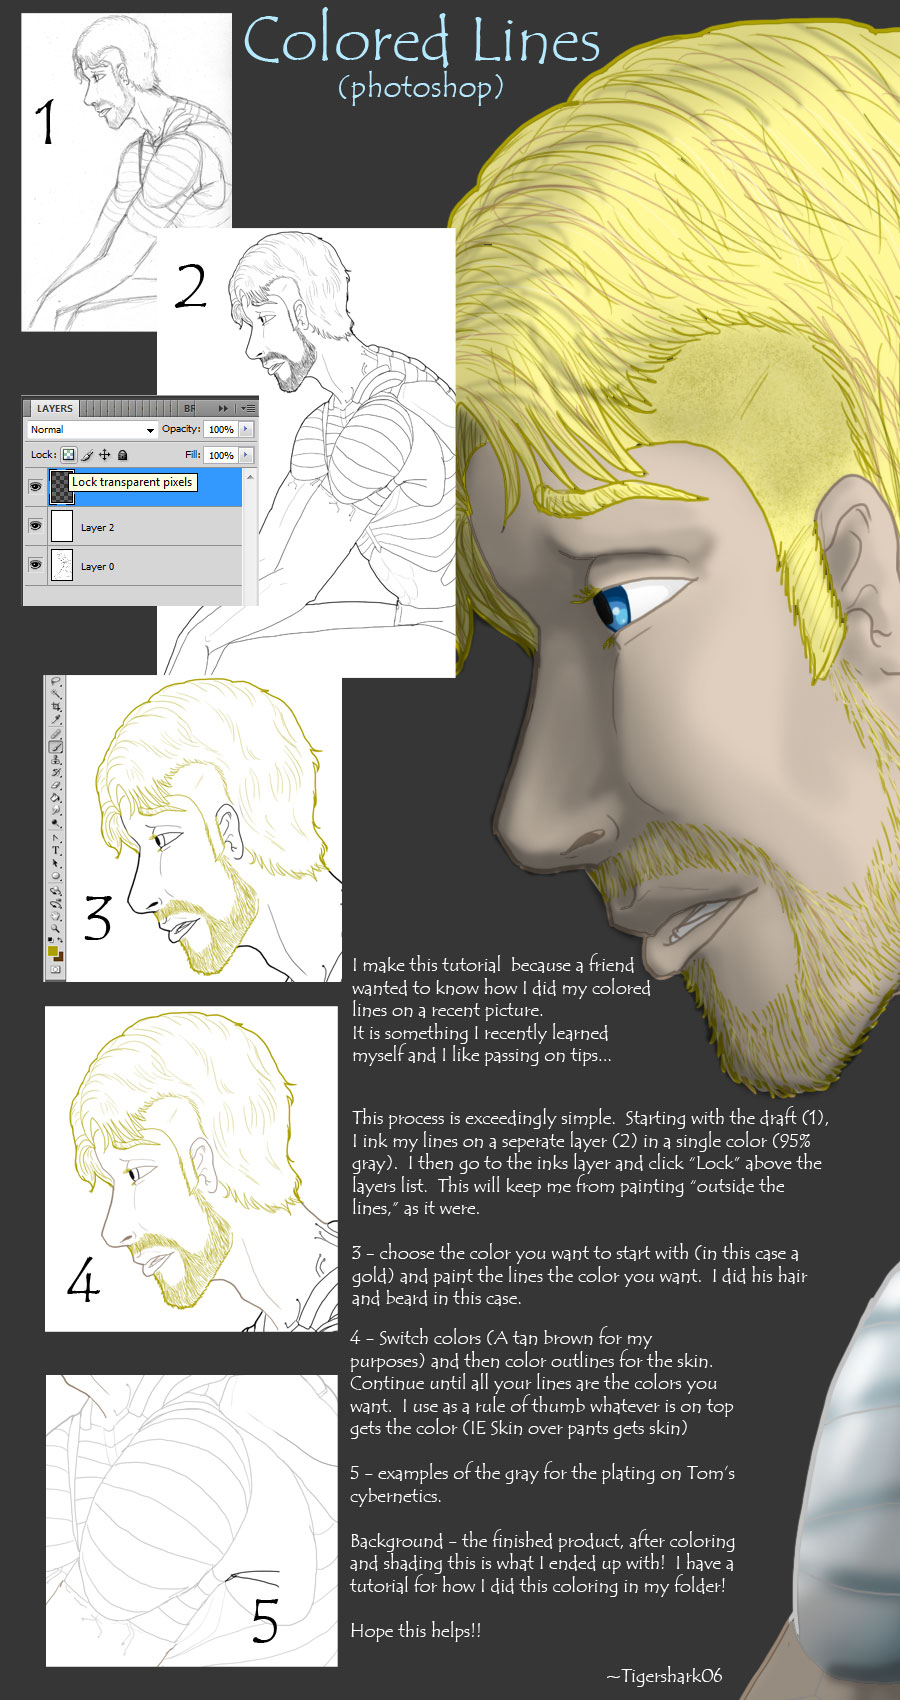 colored_lines_tutorial___photoshop_by_tigershark06-d58k671